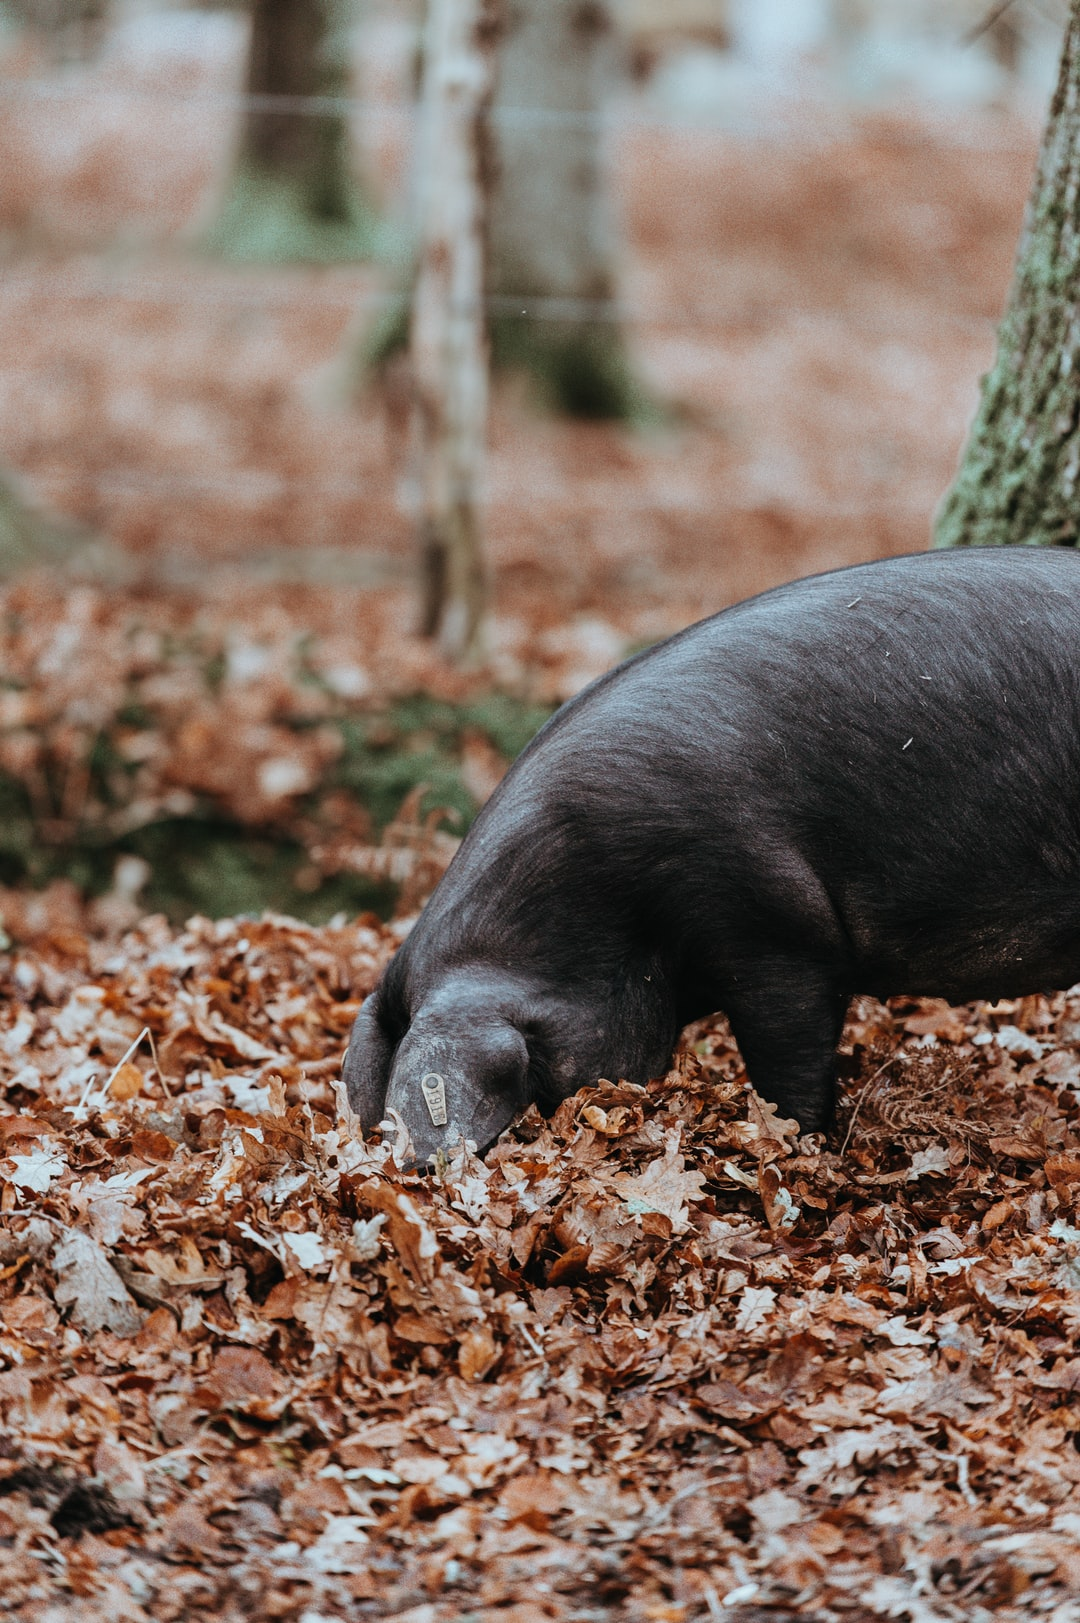 Foraging black pig in Autumn